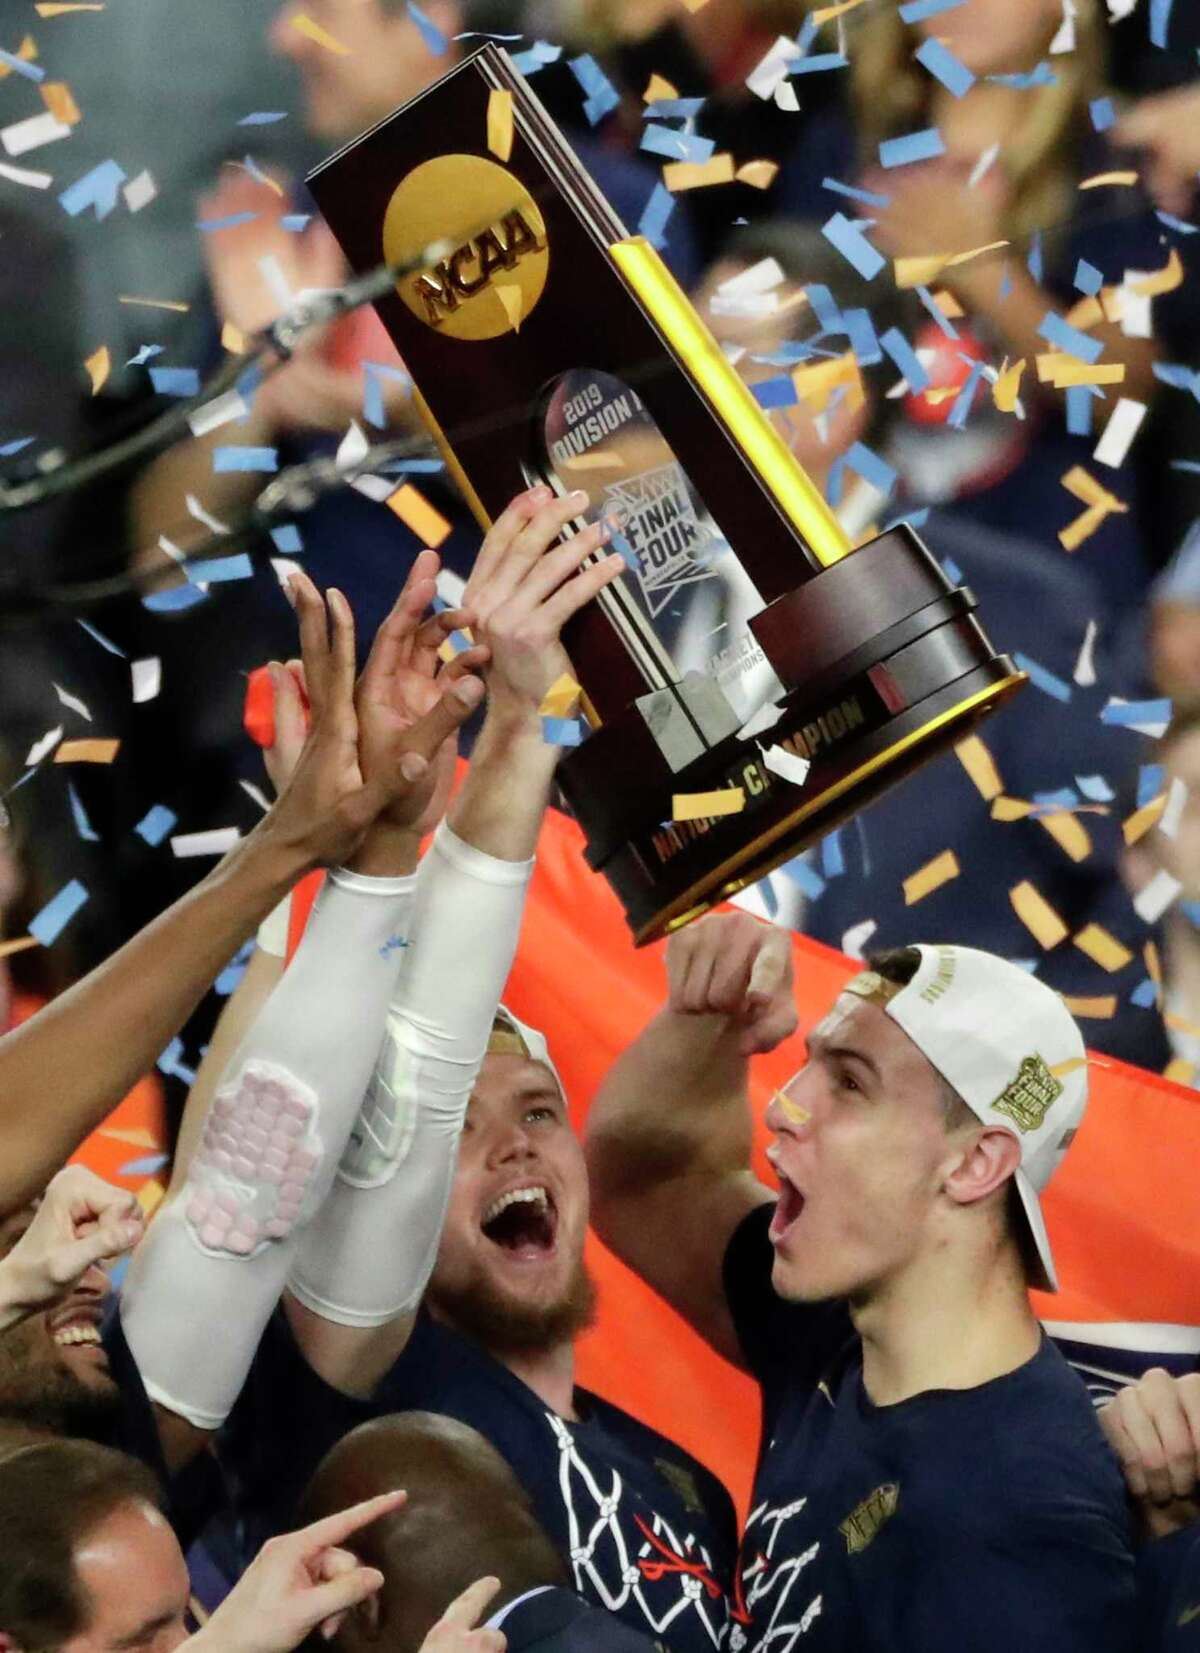 Virginia players celebrate with the trophy after defeating Texas Tech 85-77 in the championship game in the Final Four NCAA college basketball tournament, Monday, April 8, 2019, in Minneapolis. (AP Photo/Matt York)